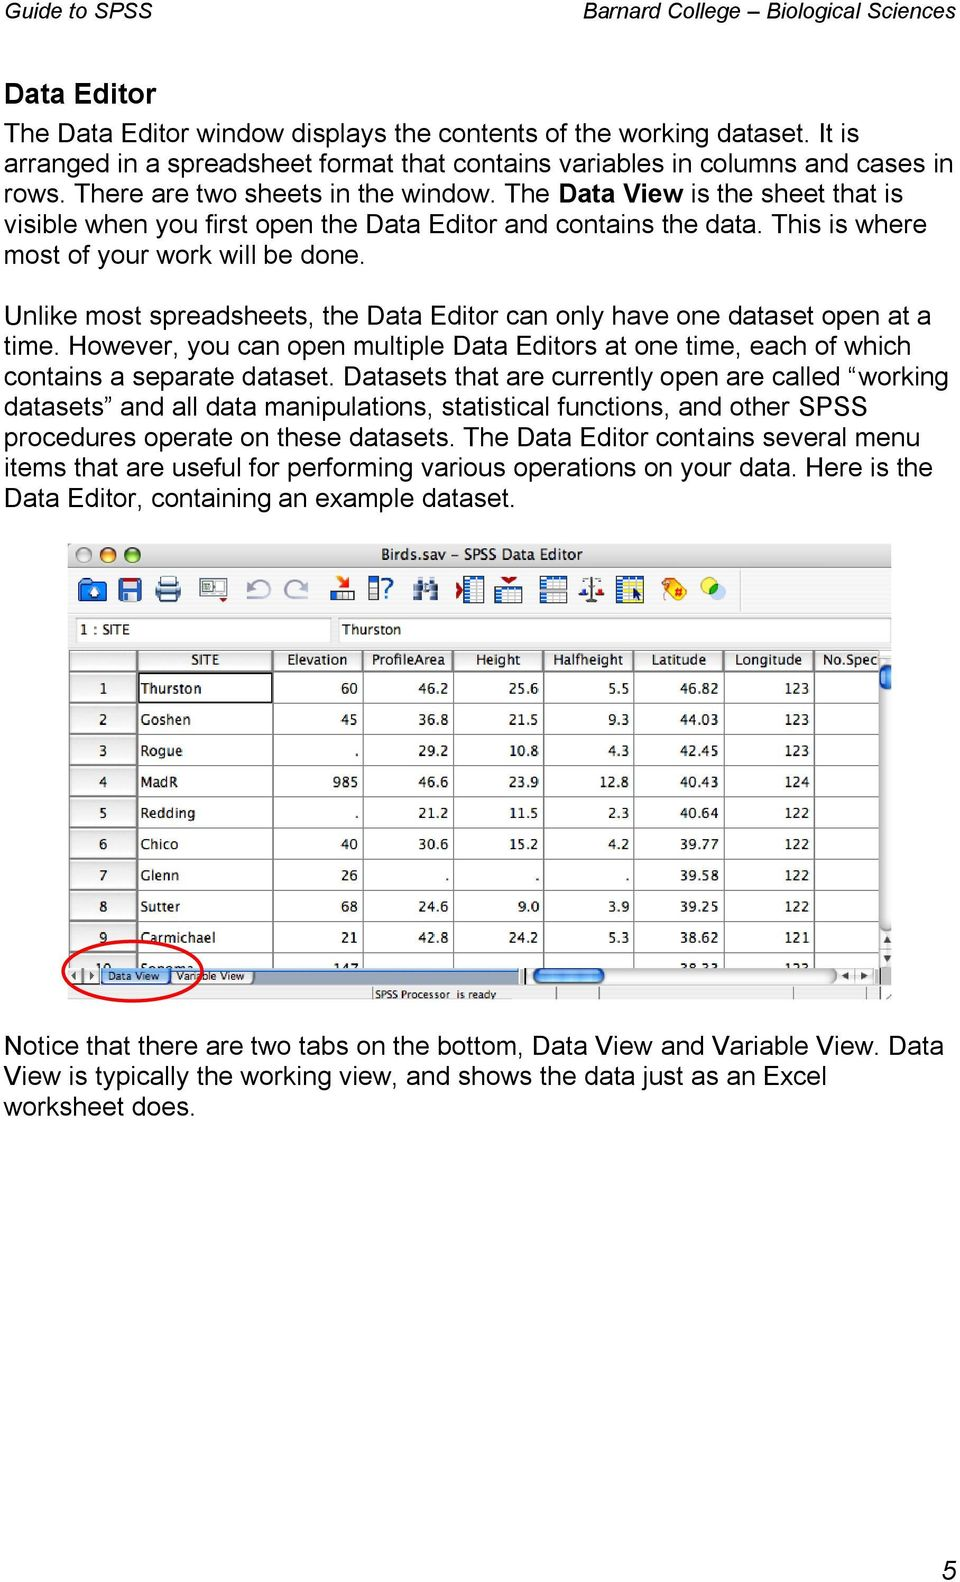 Unlike most spreadsheets, the Data Editor can only have one dataset open at a time. However, you can open multiple Data Editors at one time, each of which contains a separate dataset.